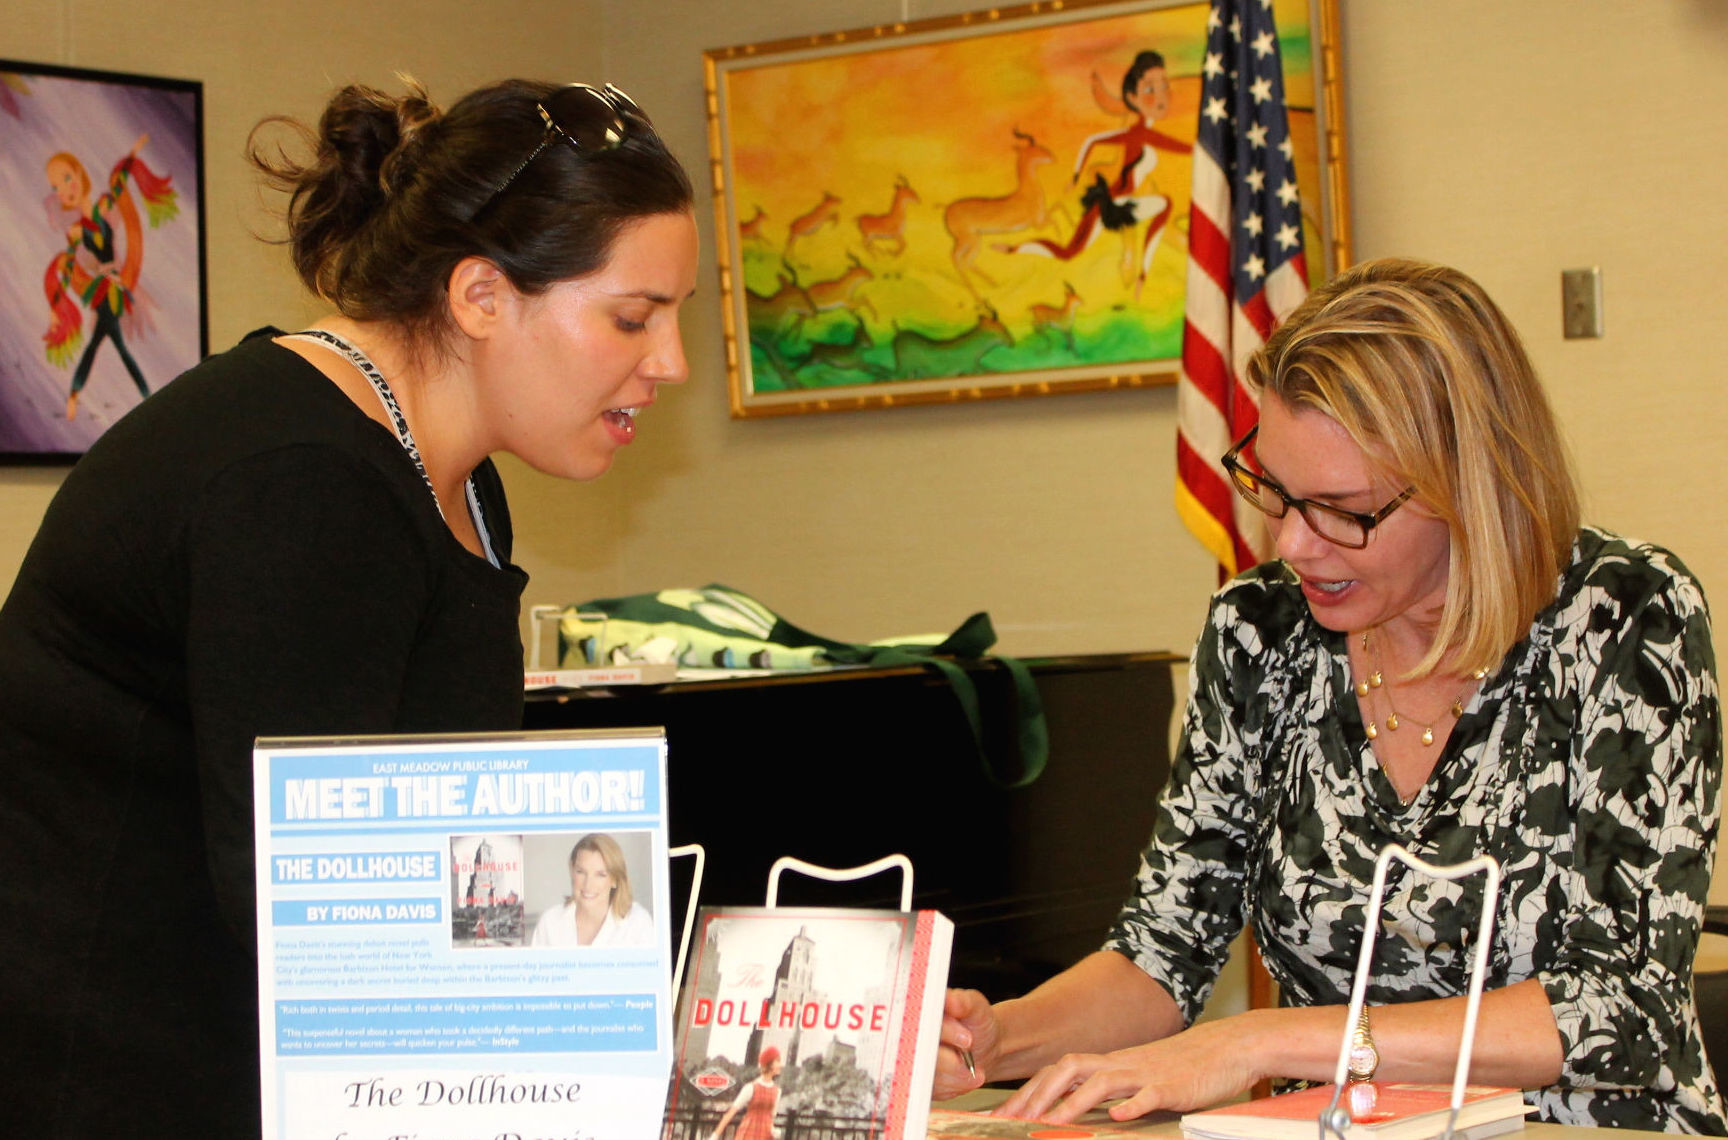 Author Fiona Davis signed books for the audience during a special meet-the-author event on July 18.